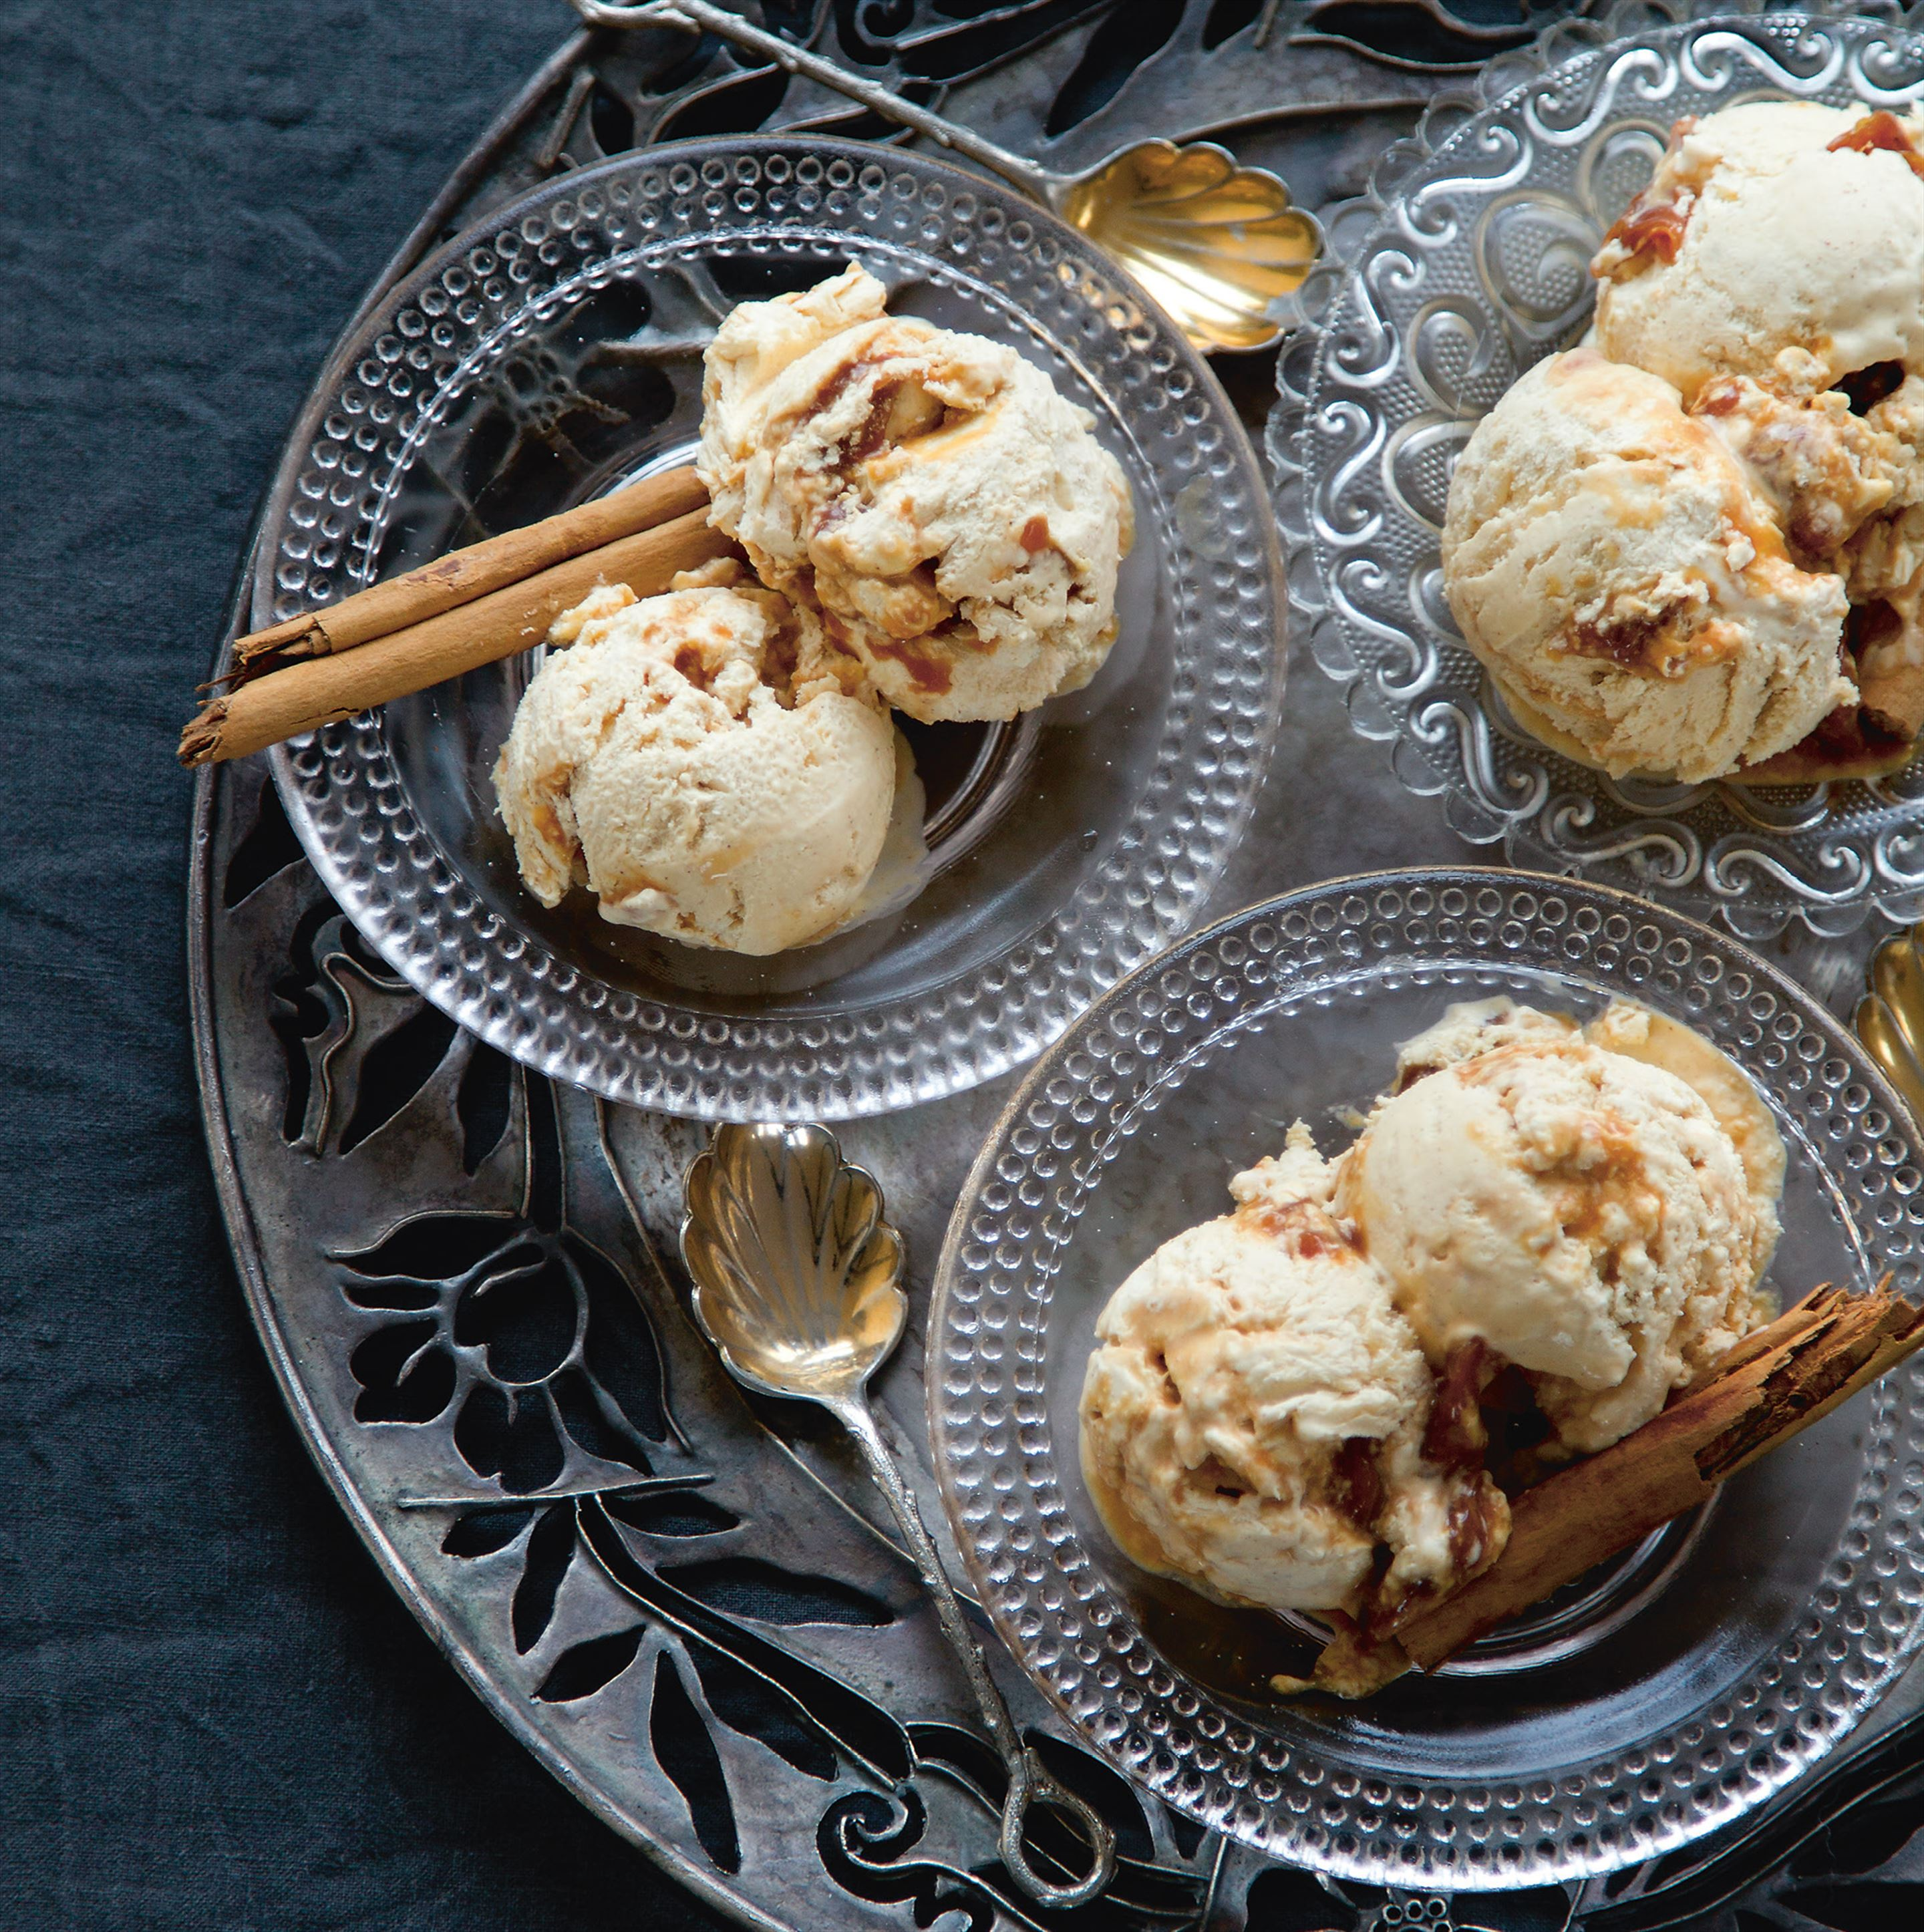 Cinnamon and mascarpone gelato with salted caramel